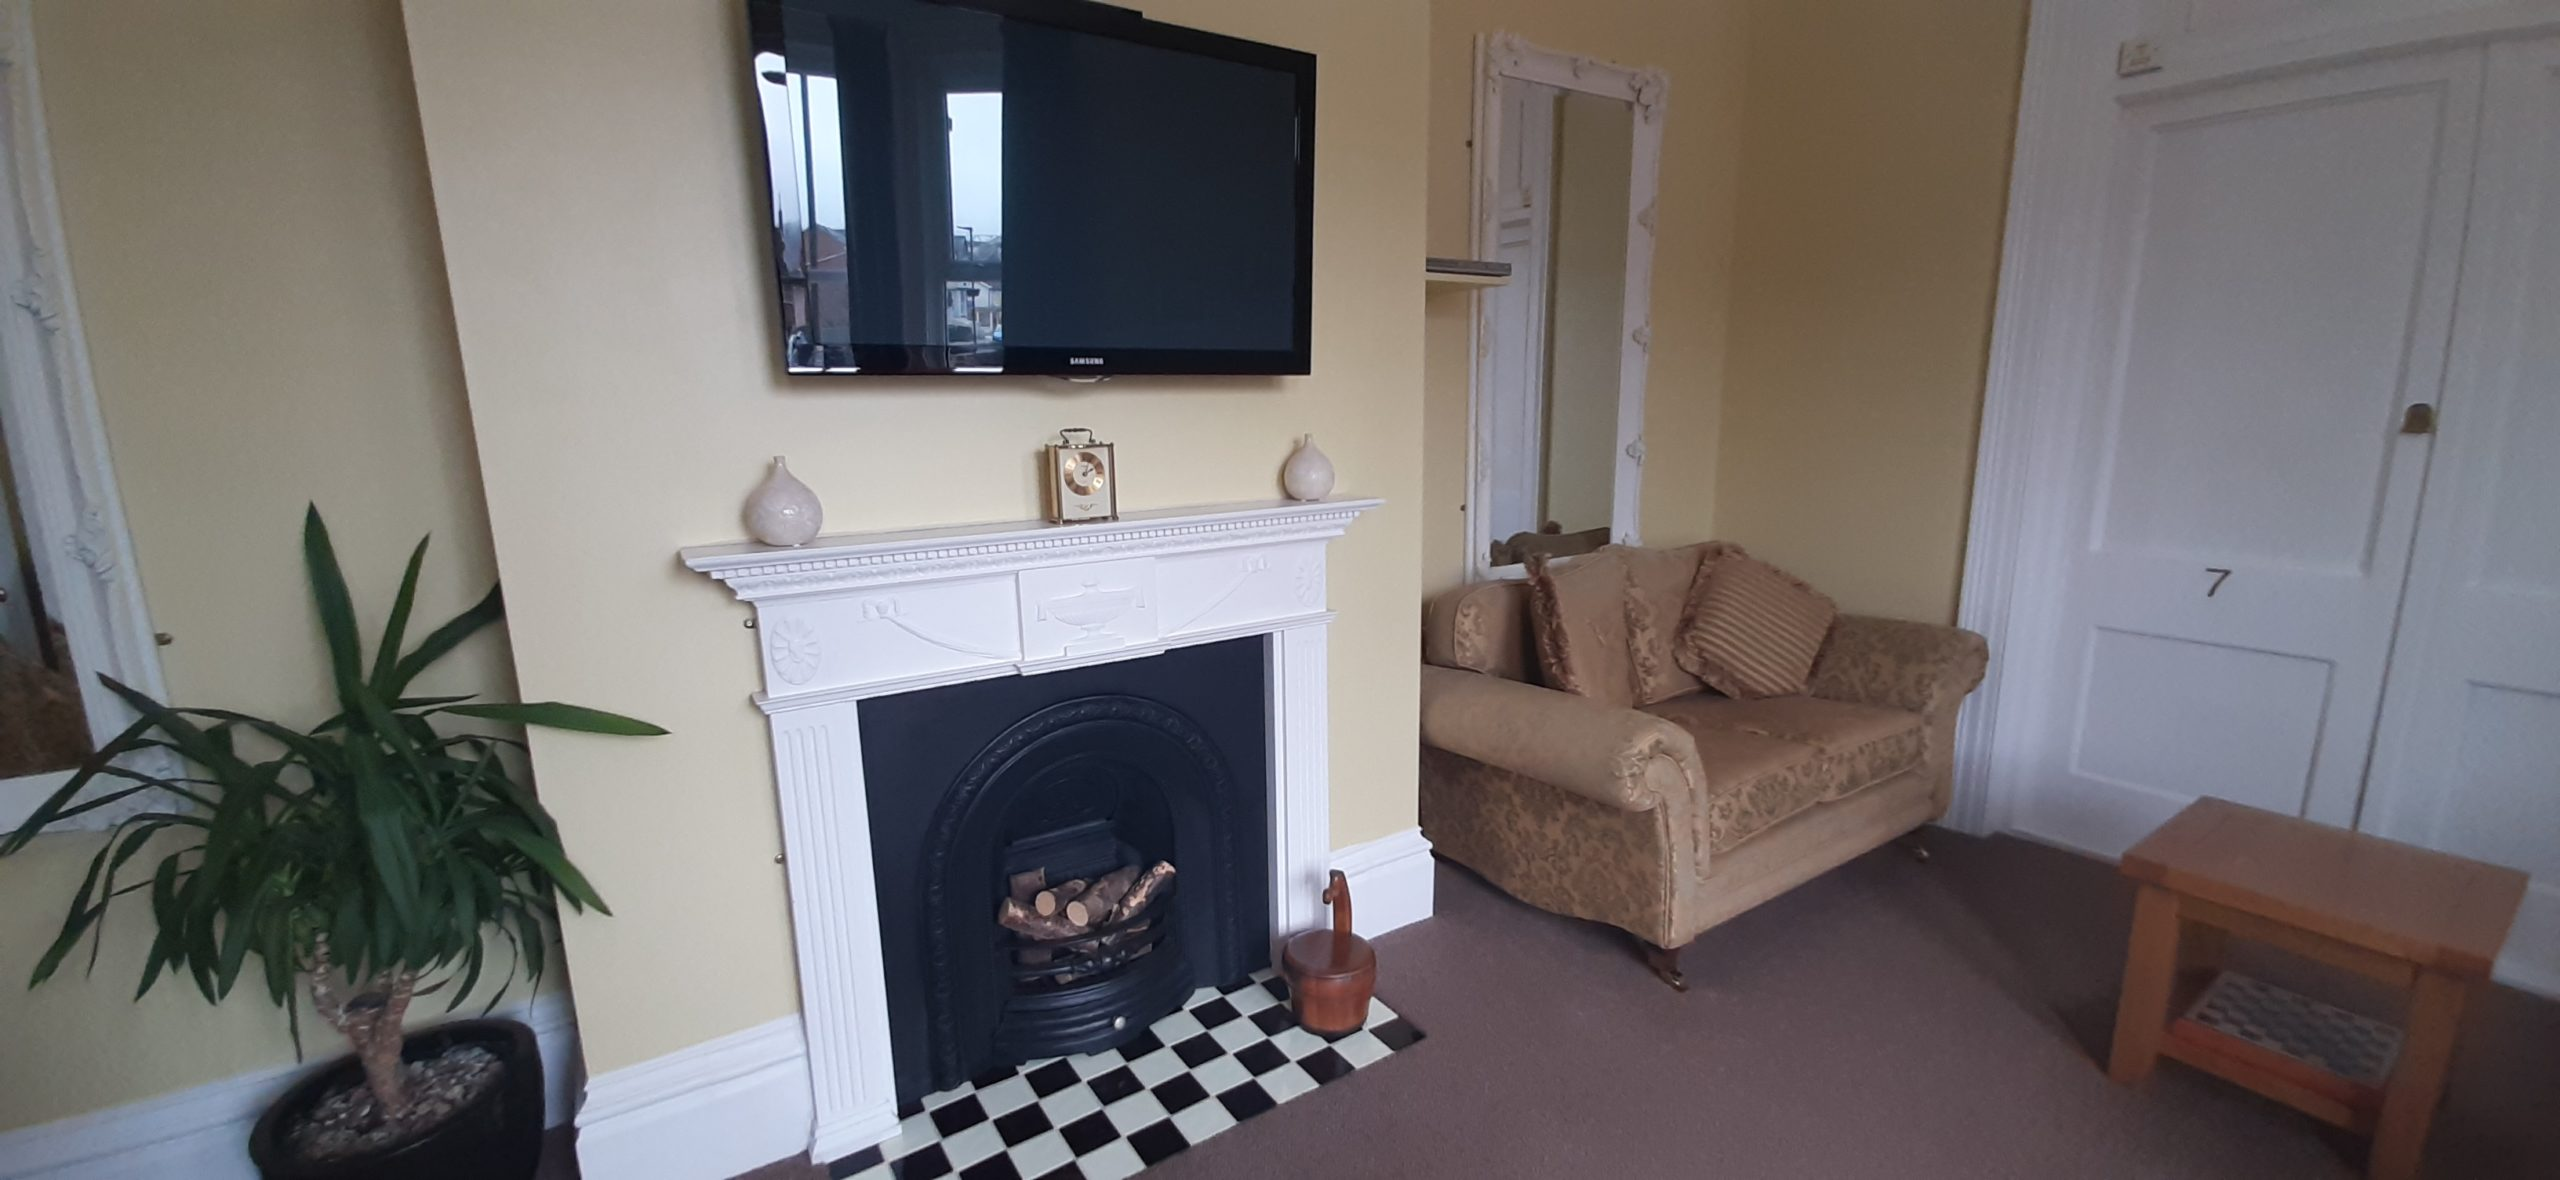 Showing the TV, Fireplace & Sofas in the Guest Lounge